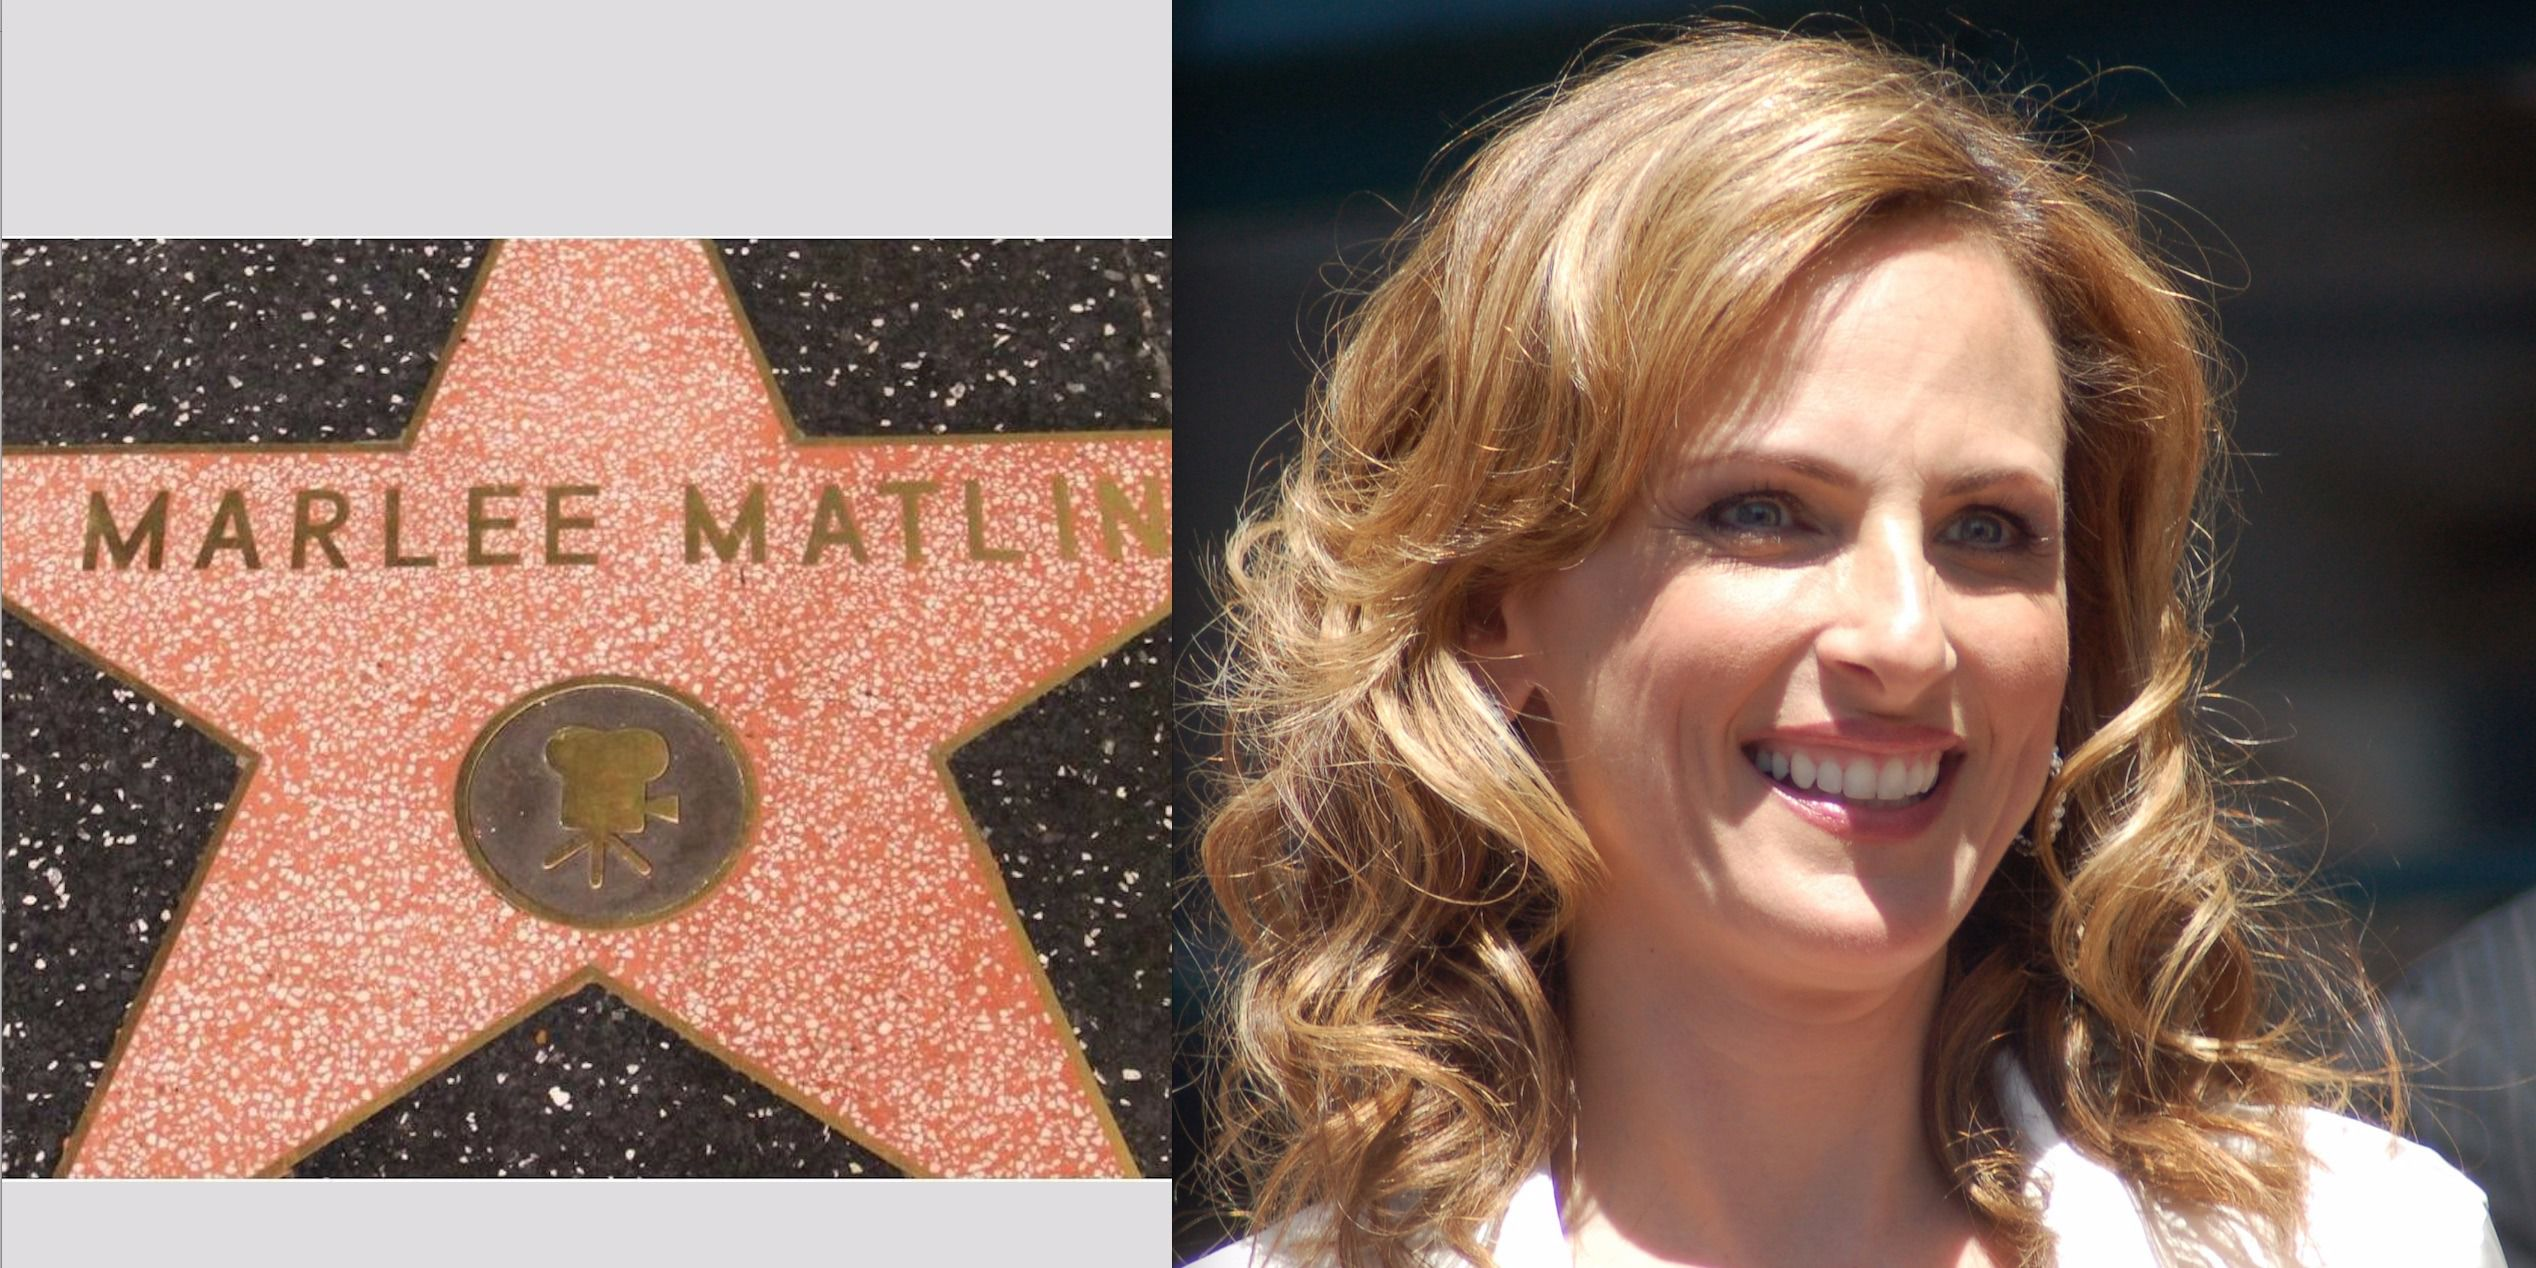 Hollywood Star: Actress Marlee Matlin receiving a star at the Hollywood Walk of Fame.